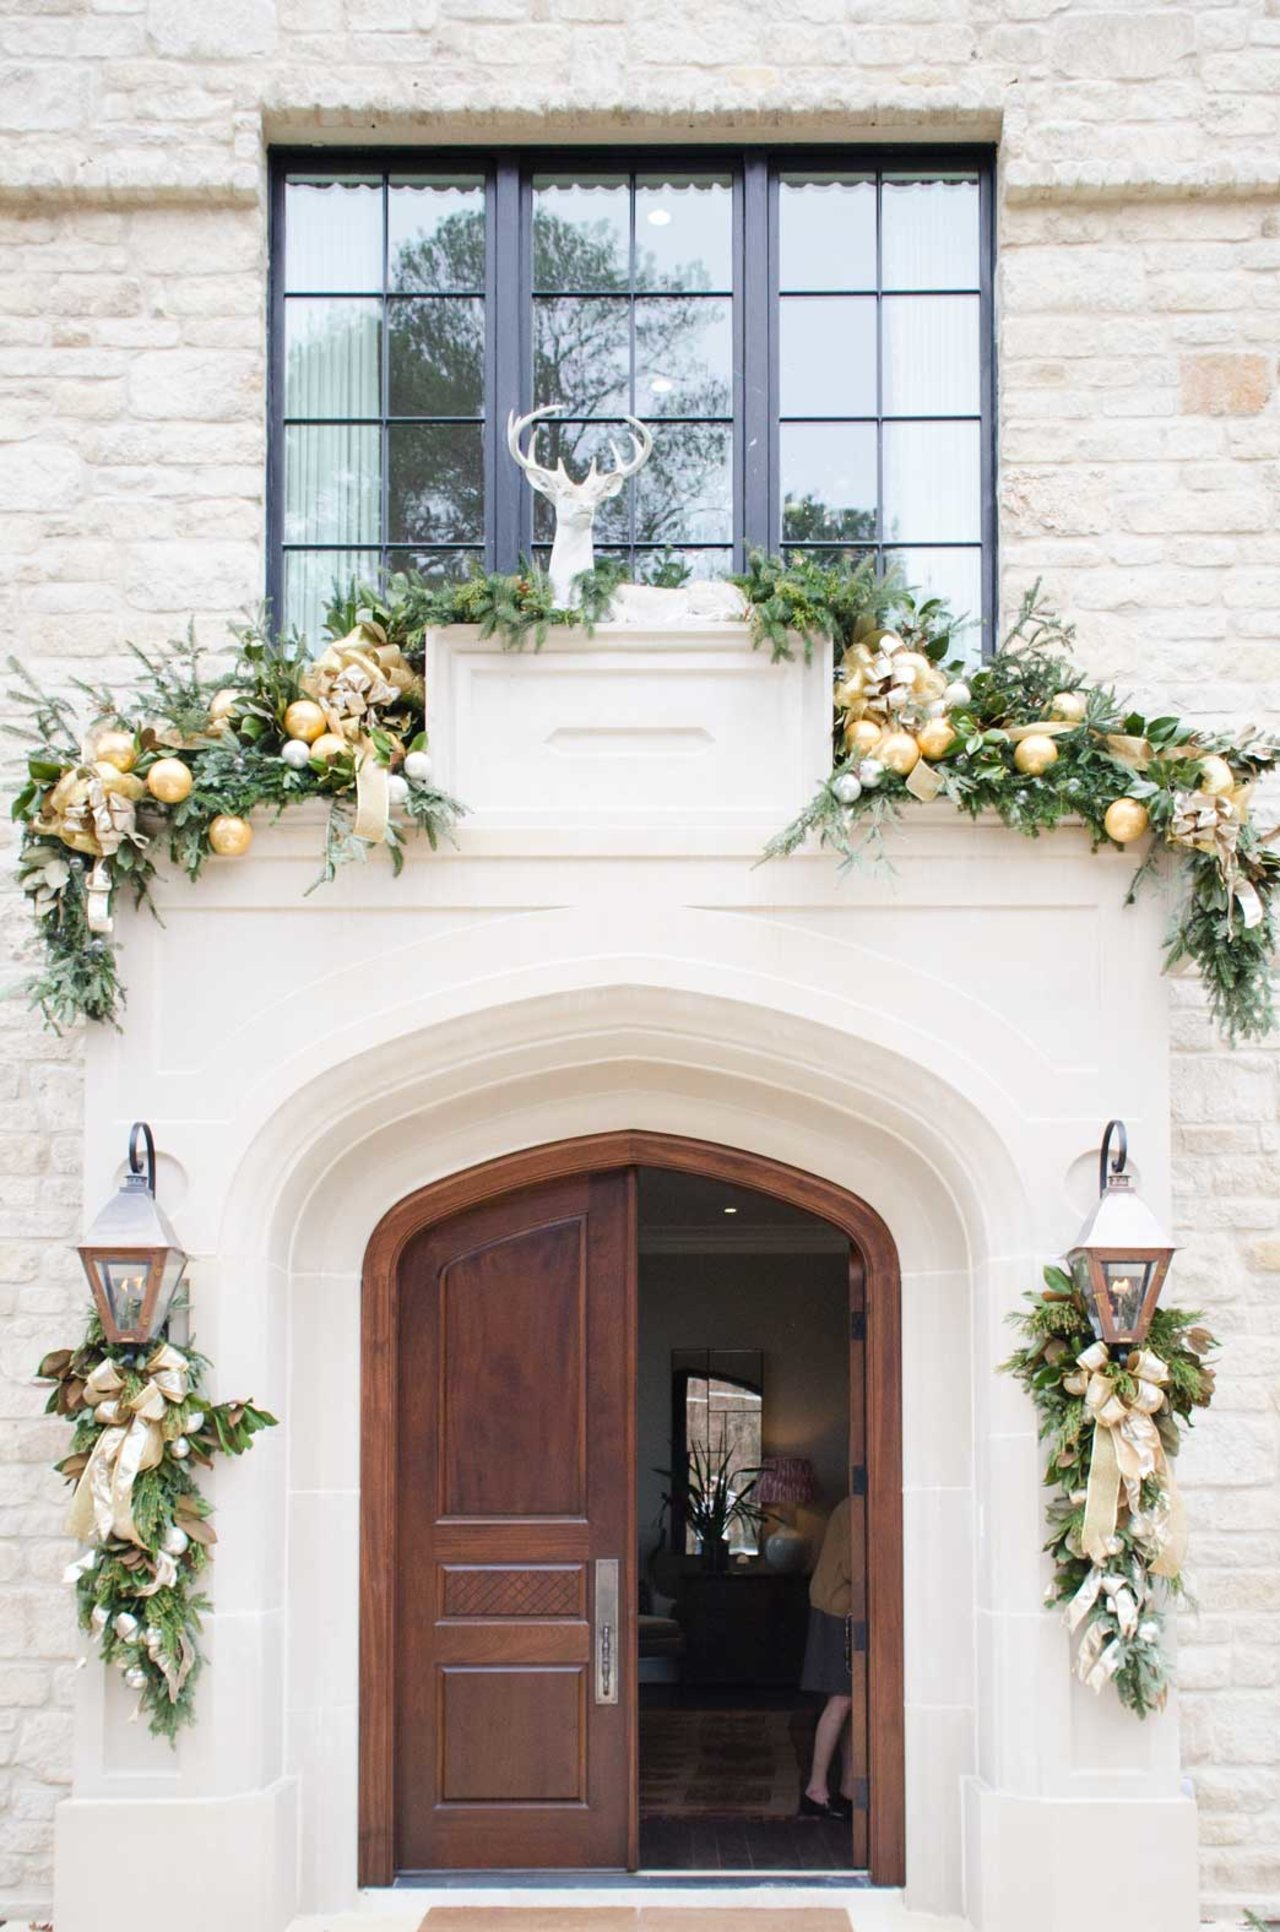 Gorgeous holiday decor on front porch of elegant Home for Holidays showhouse in Atlanta 2015 - Hello Lovely Studio